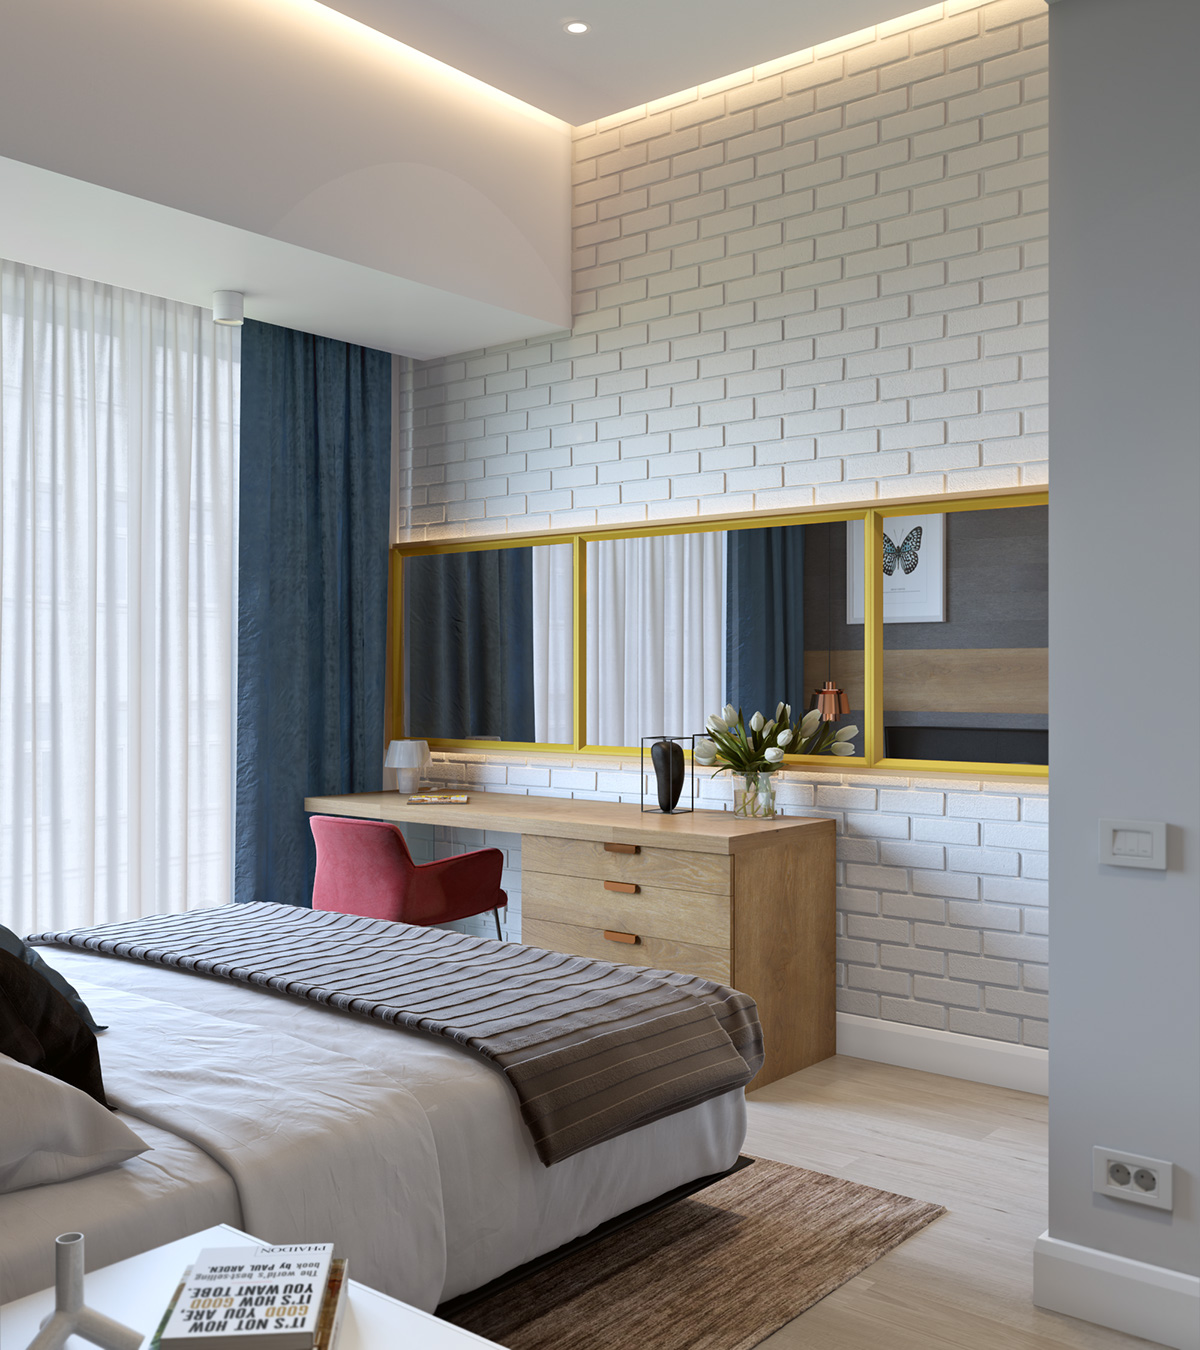 Luxary Apartments: Luxury Apartment On Behance